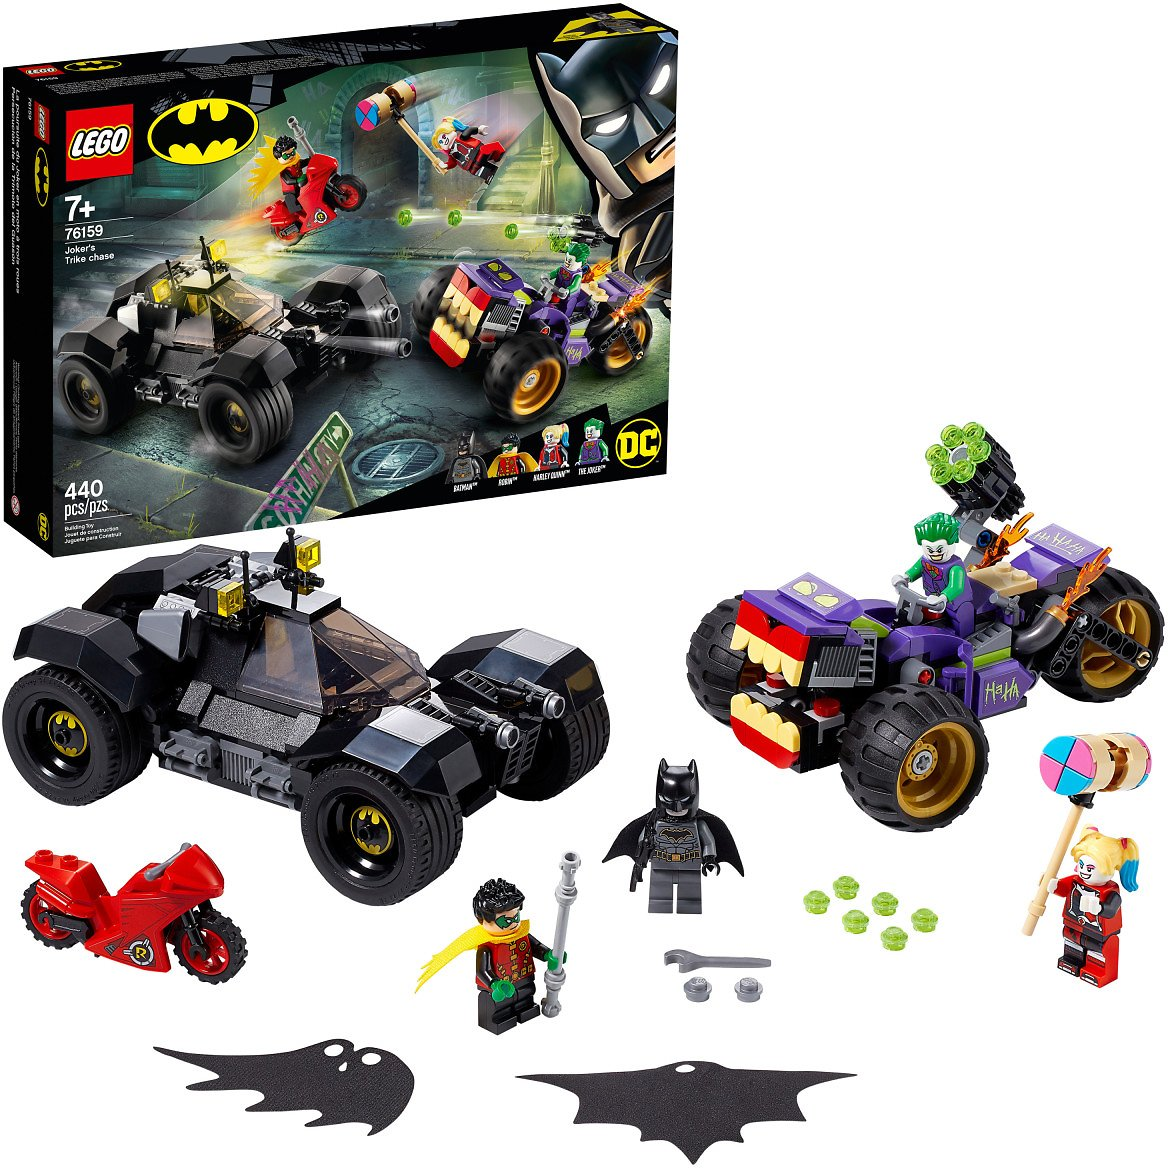 LEGO DC Batman Joker's Trike Chase 76159 Batmobile Building Toy with Action Minifigures (440 Pieces)